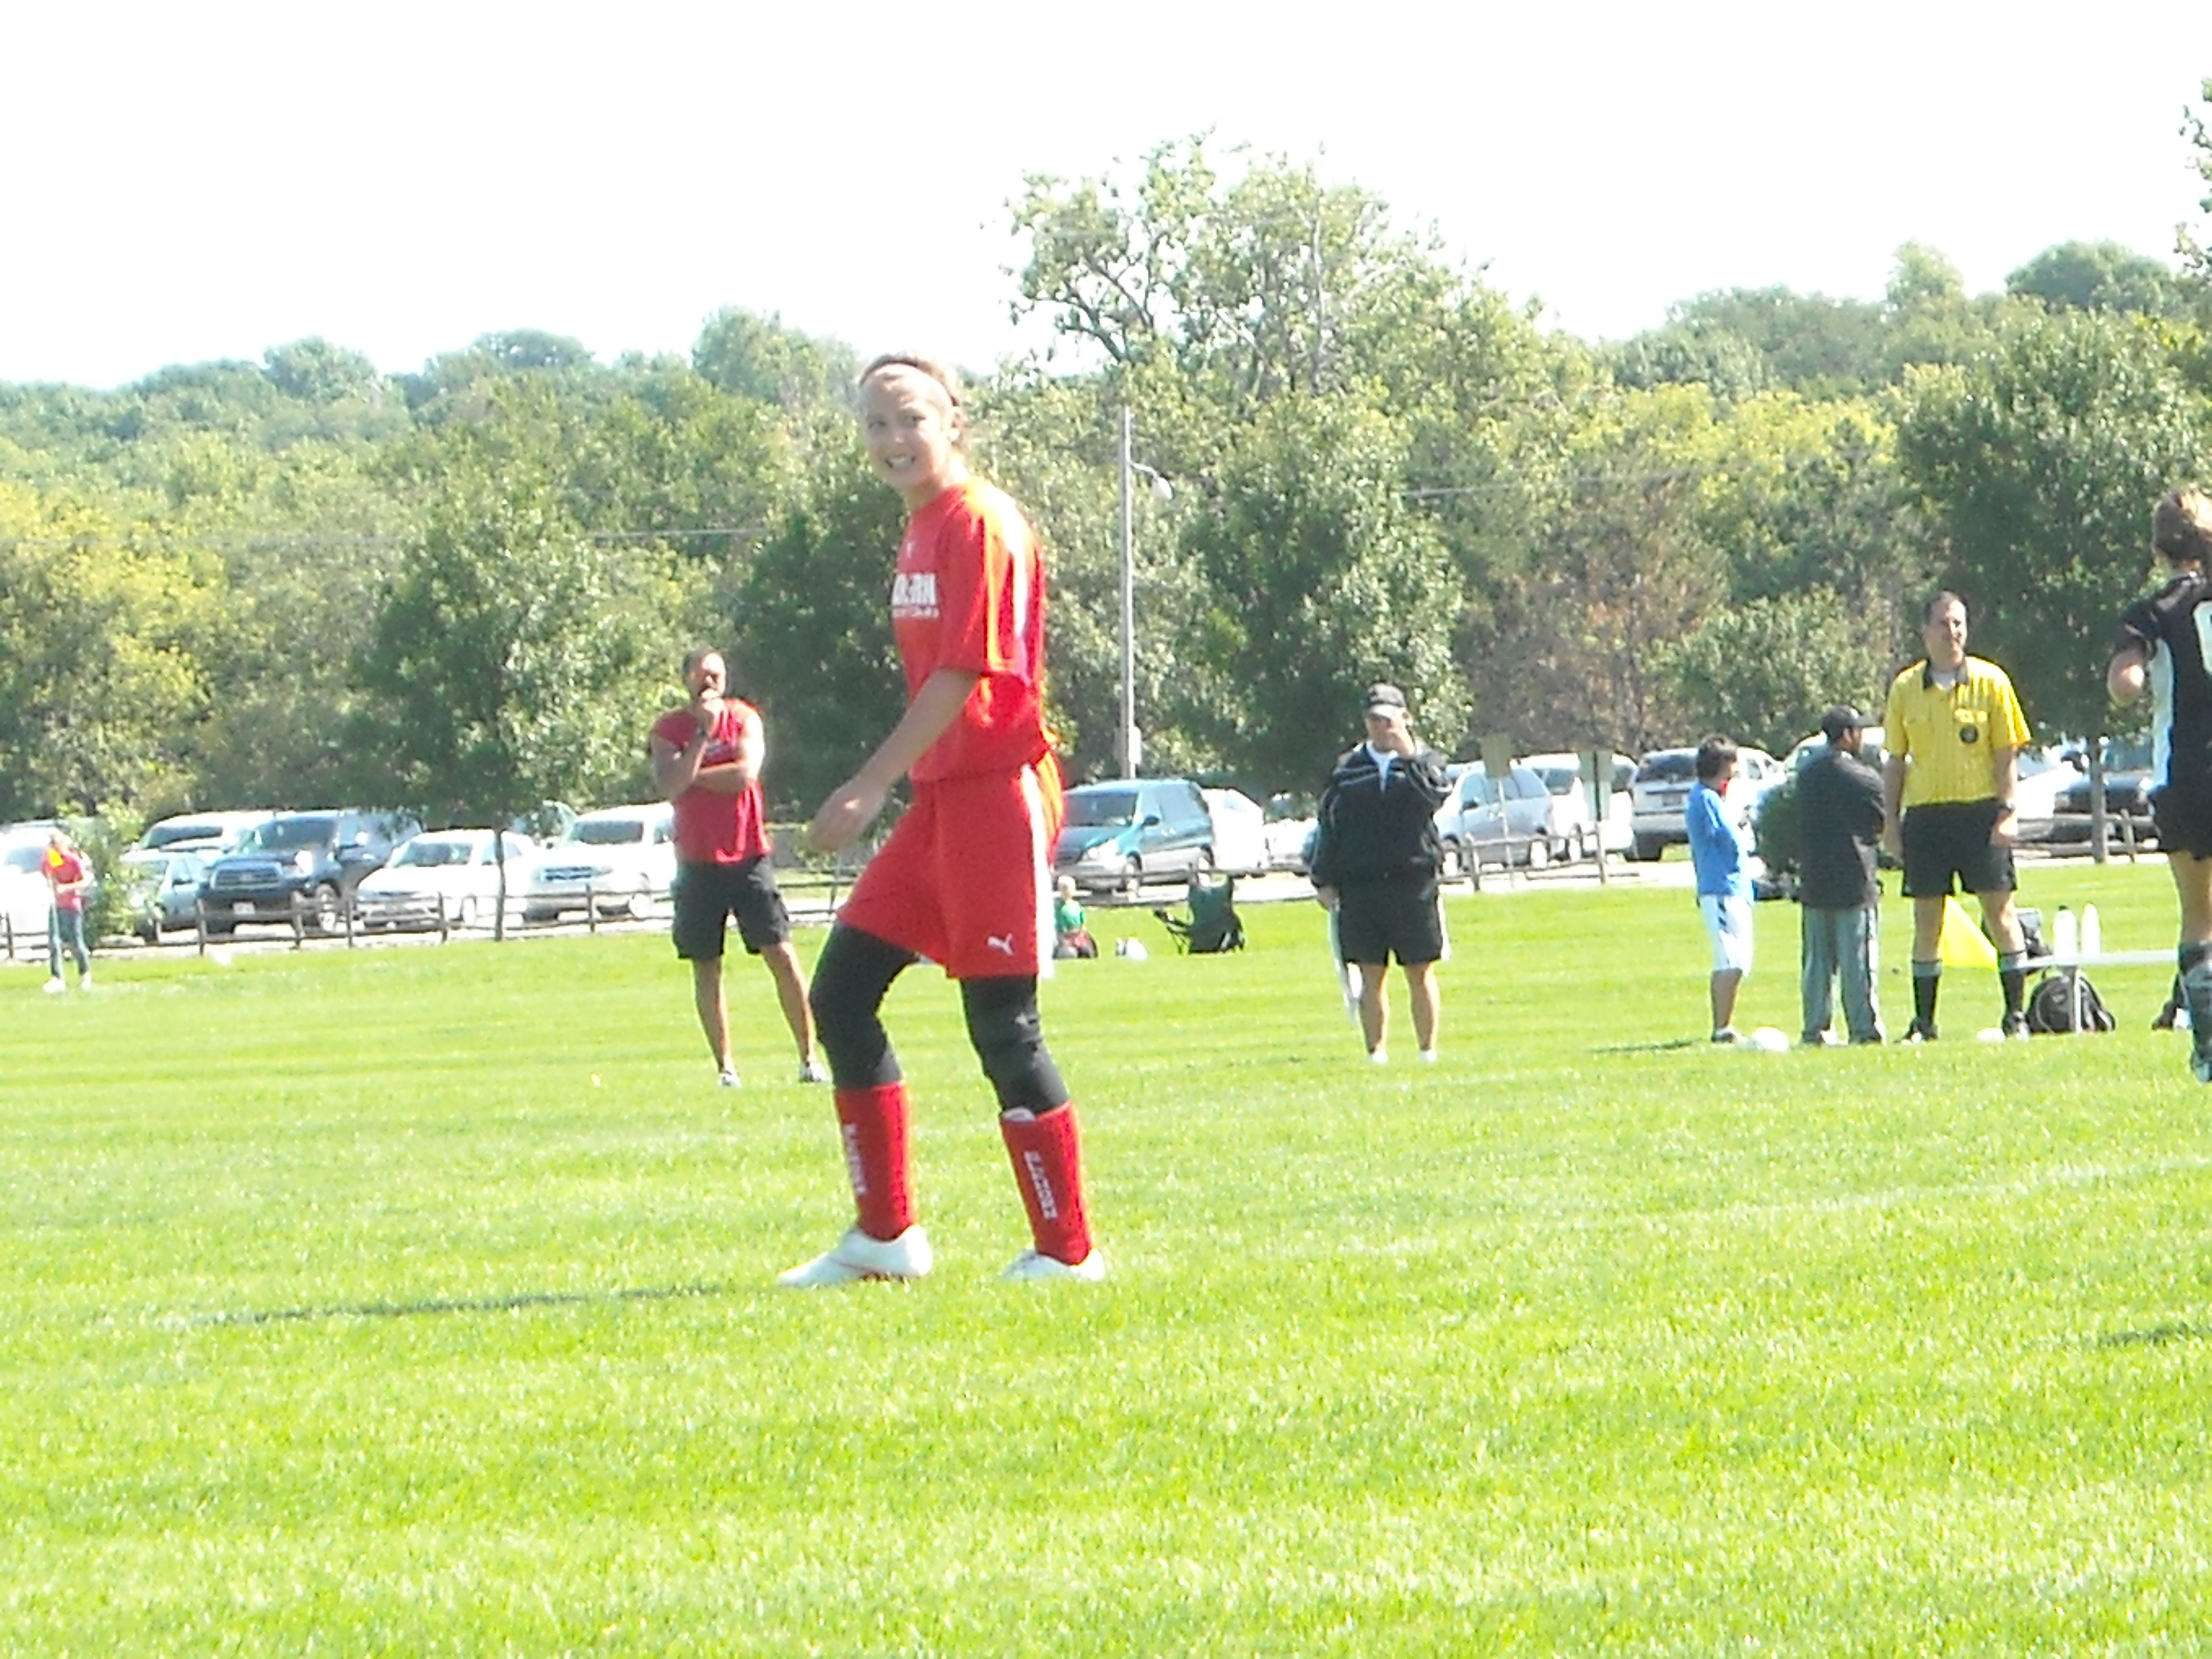 Sydney on the soccer field